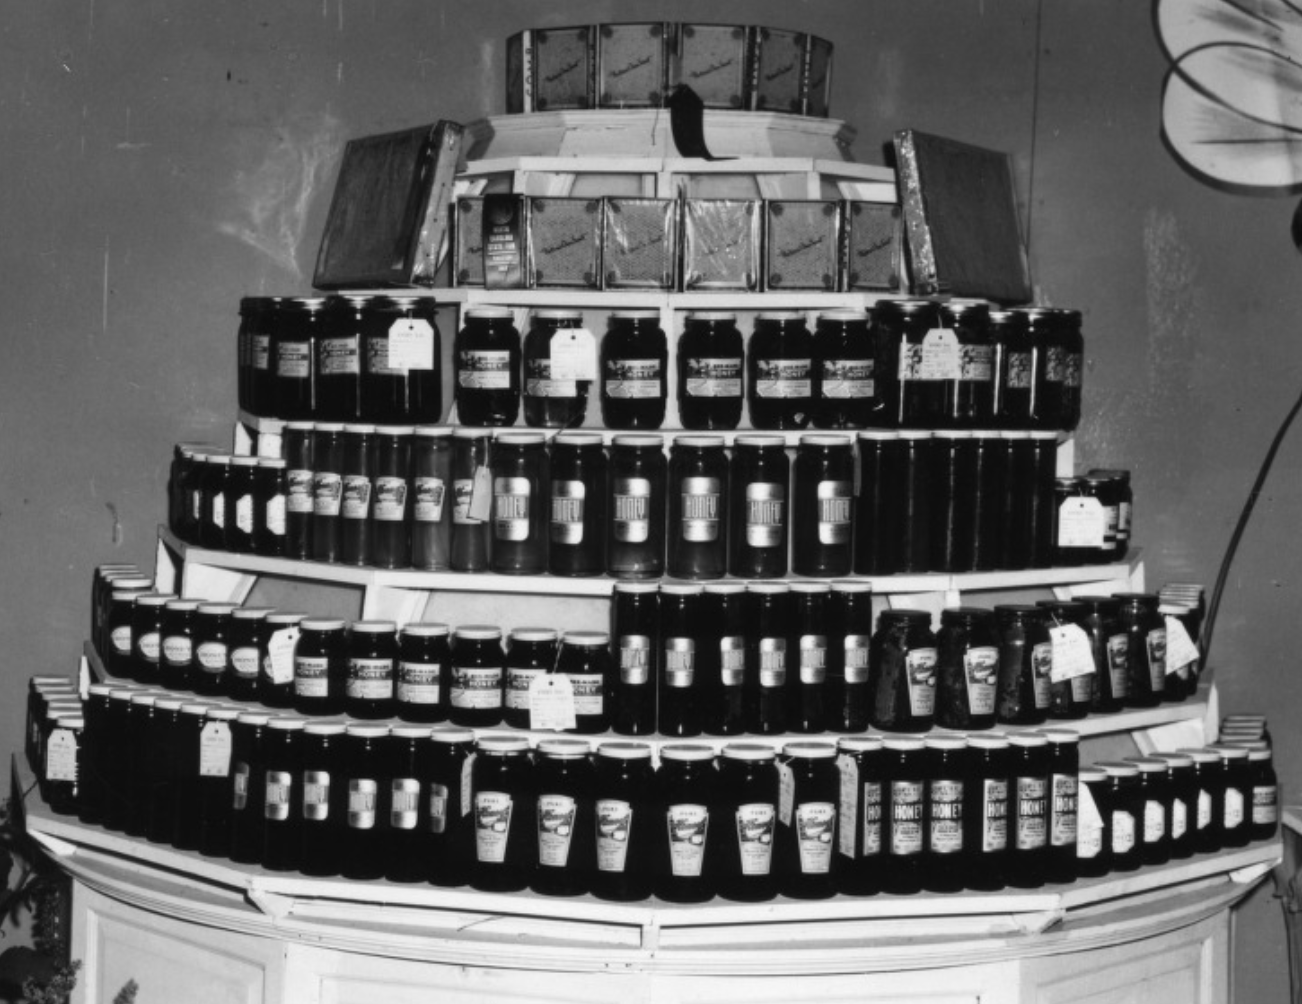 Honey exhibit at NC State Fair, ca. 1950